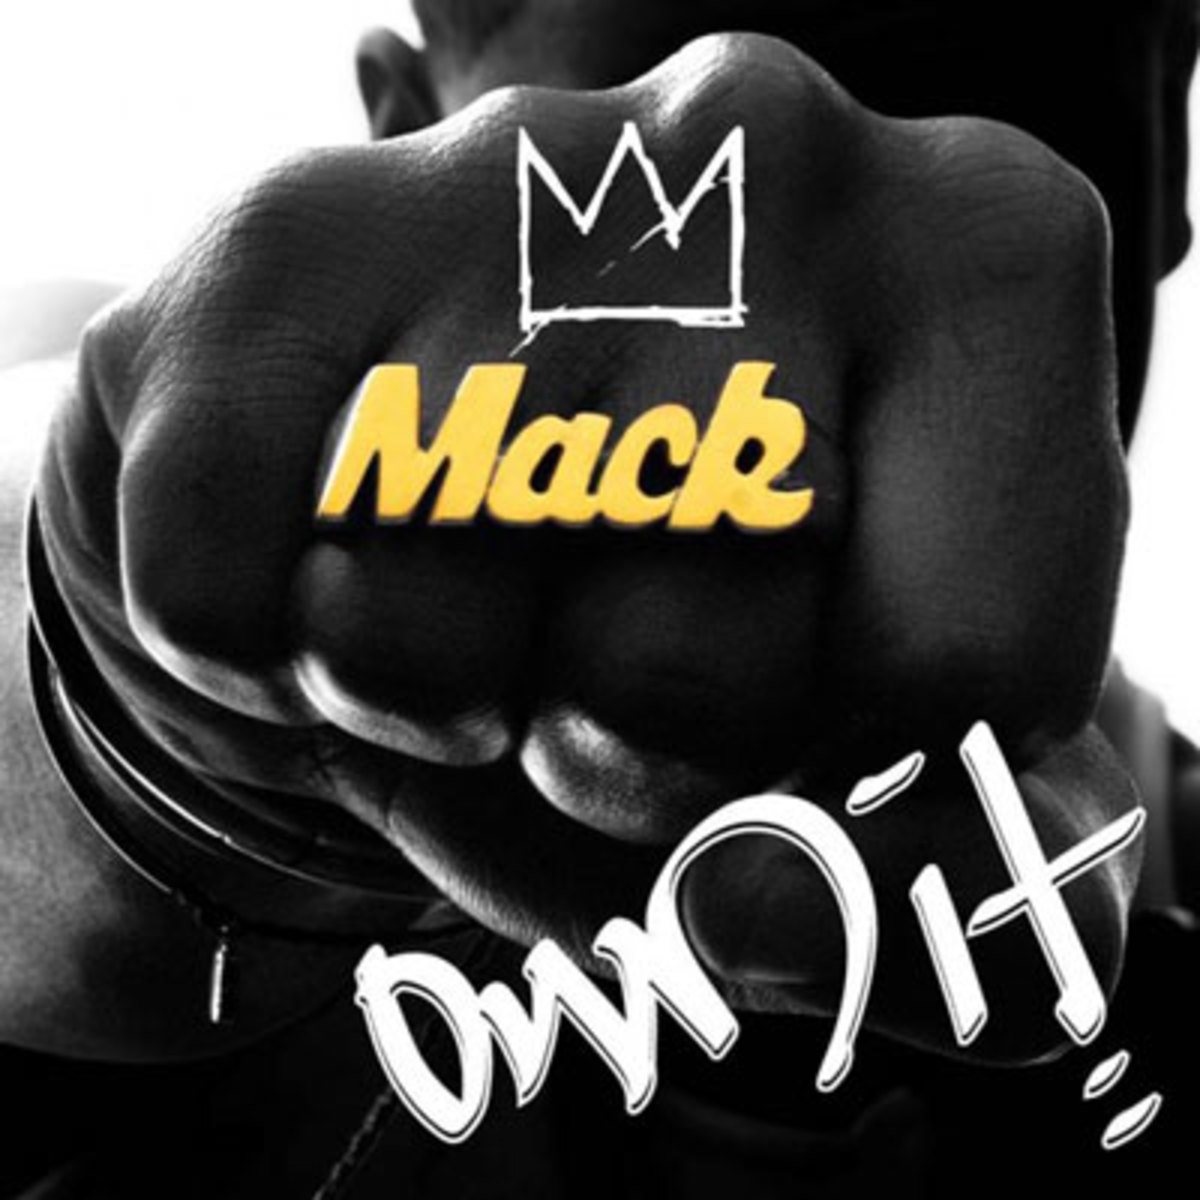 mackwilds-ownit.jpg